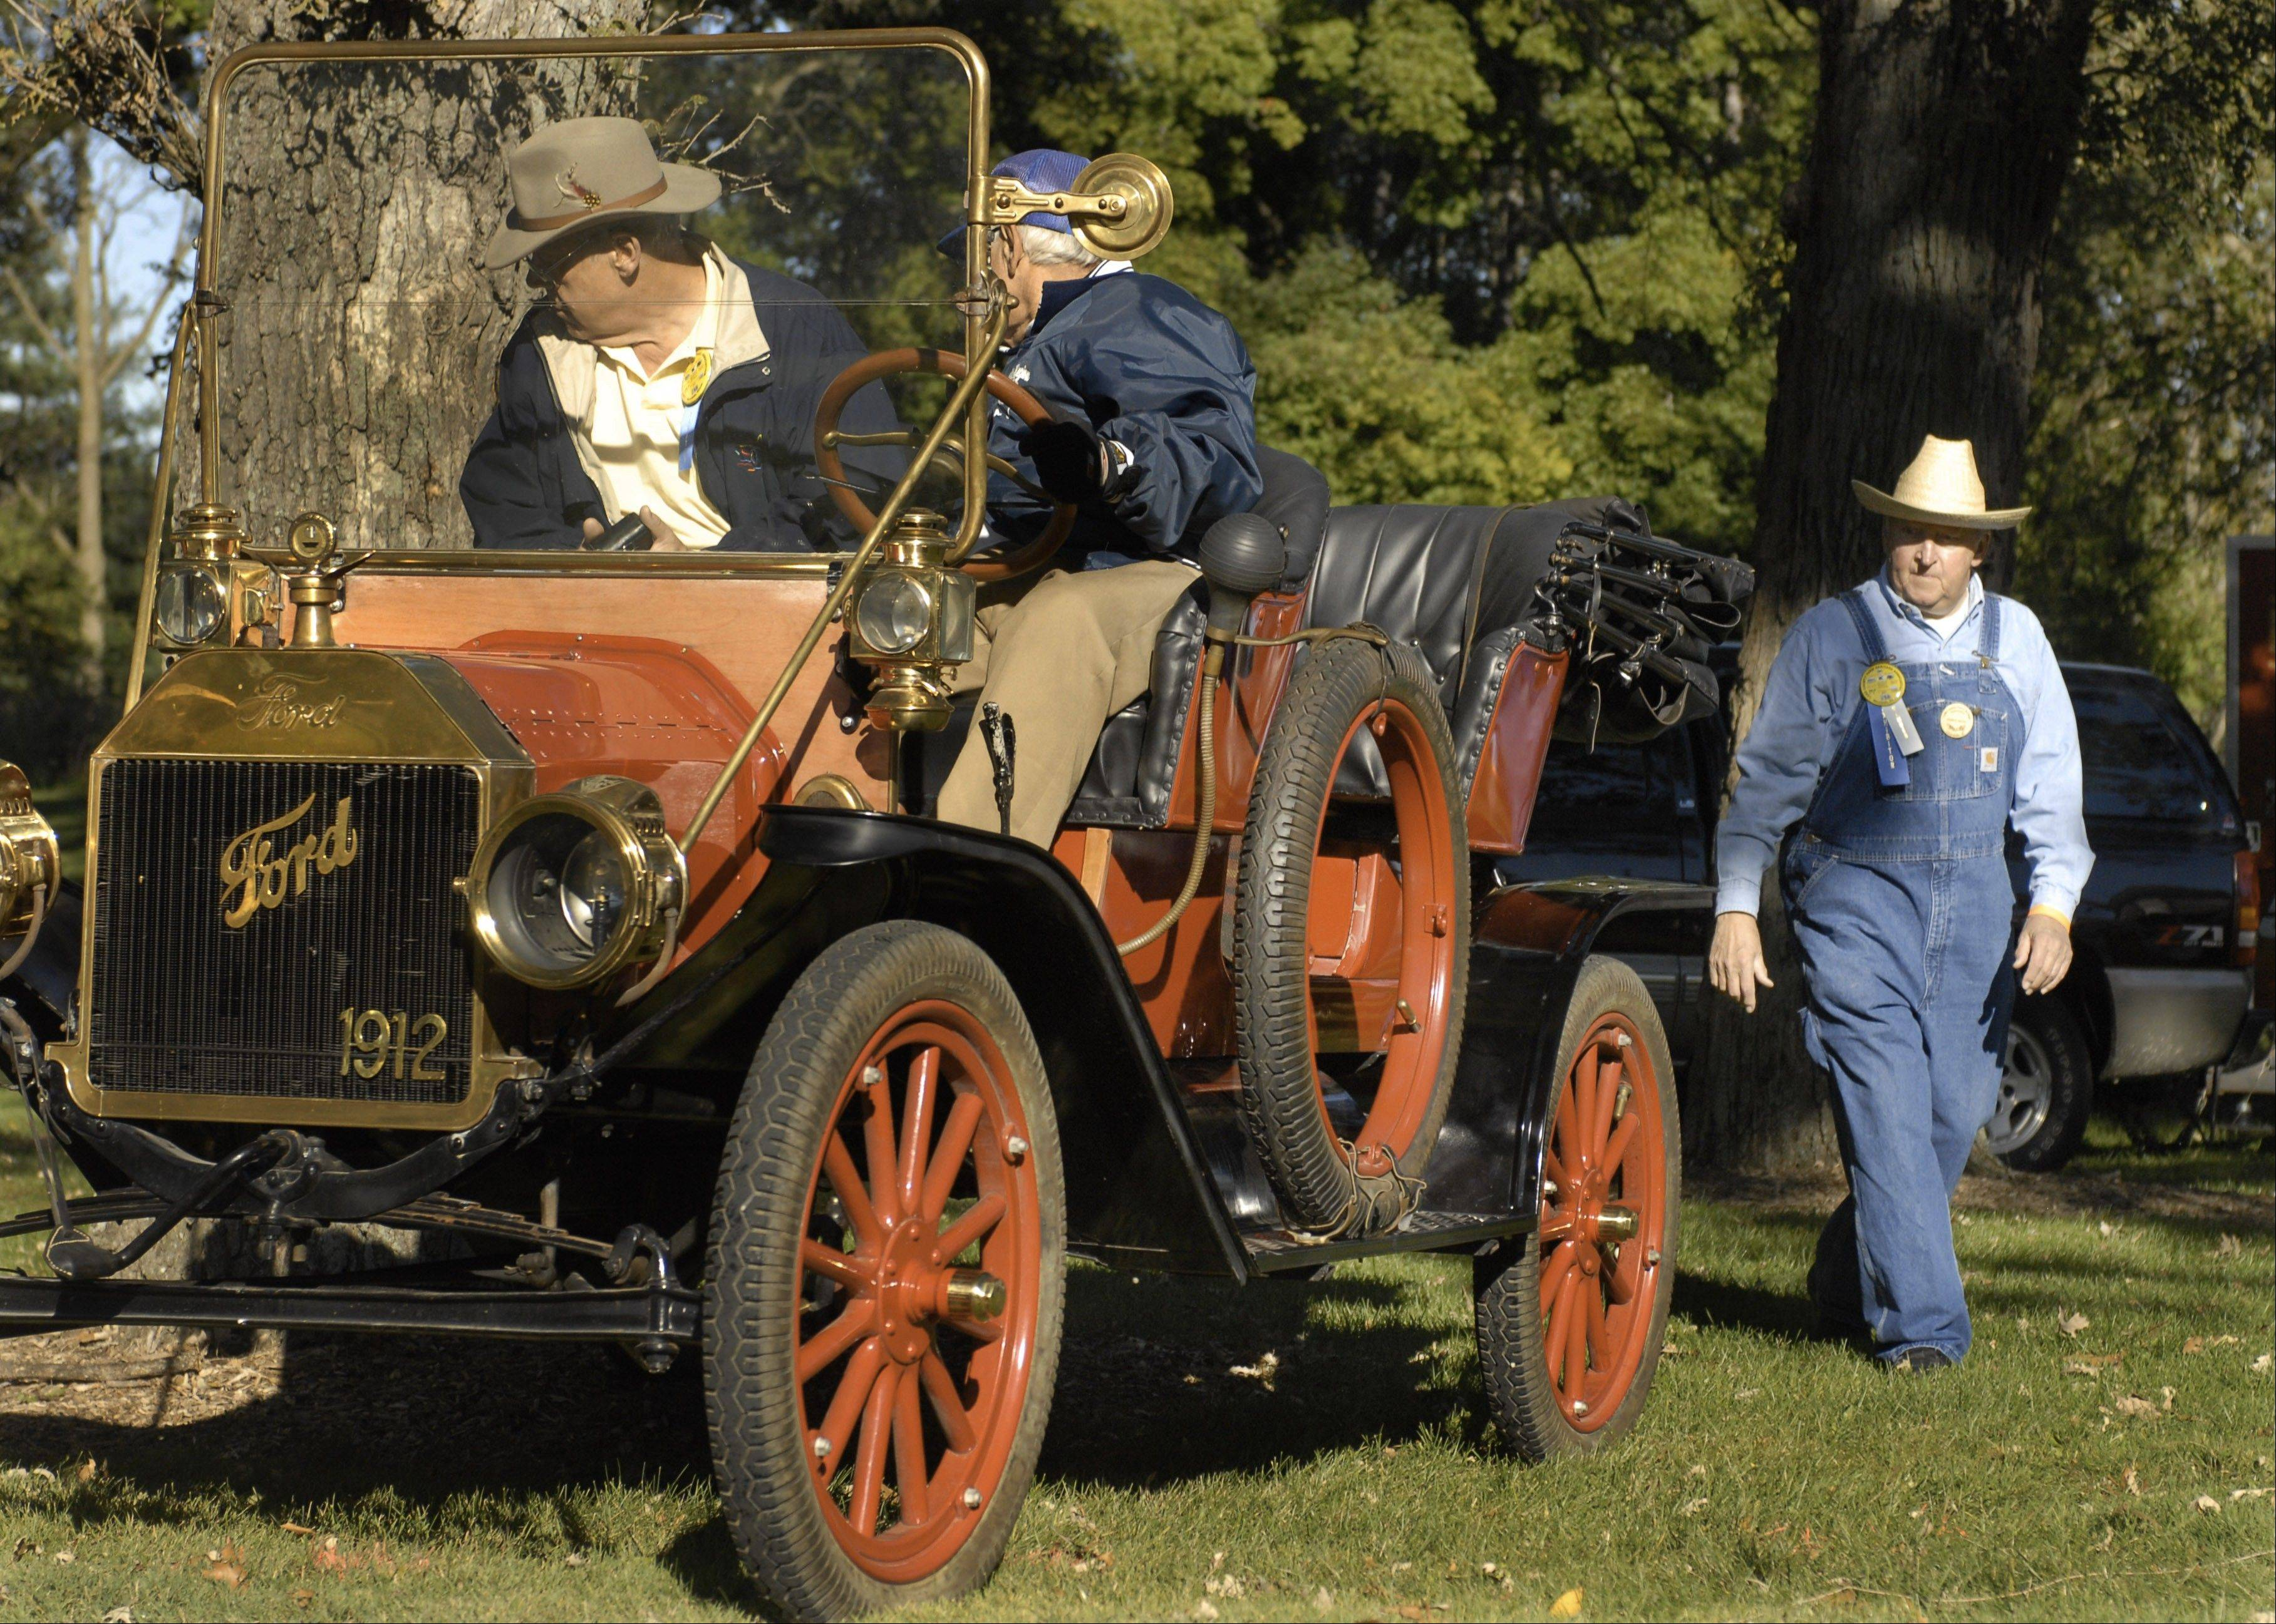 A tractor parade is part of the fun at the annual Farm Heritage Festival at the Lakewood Forest Preserve in Wauconda.